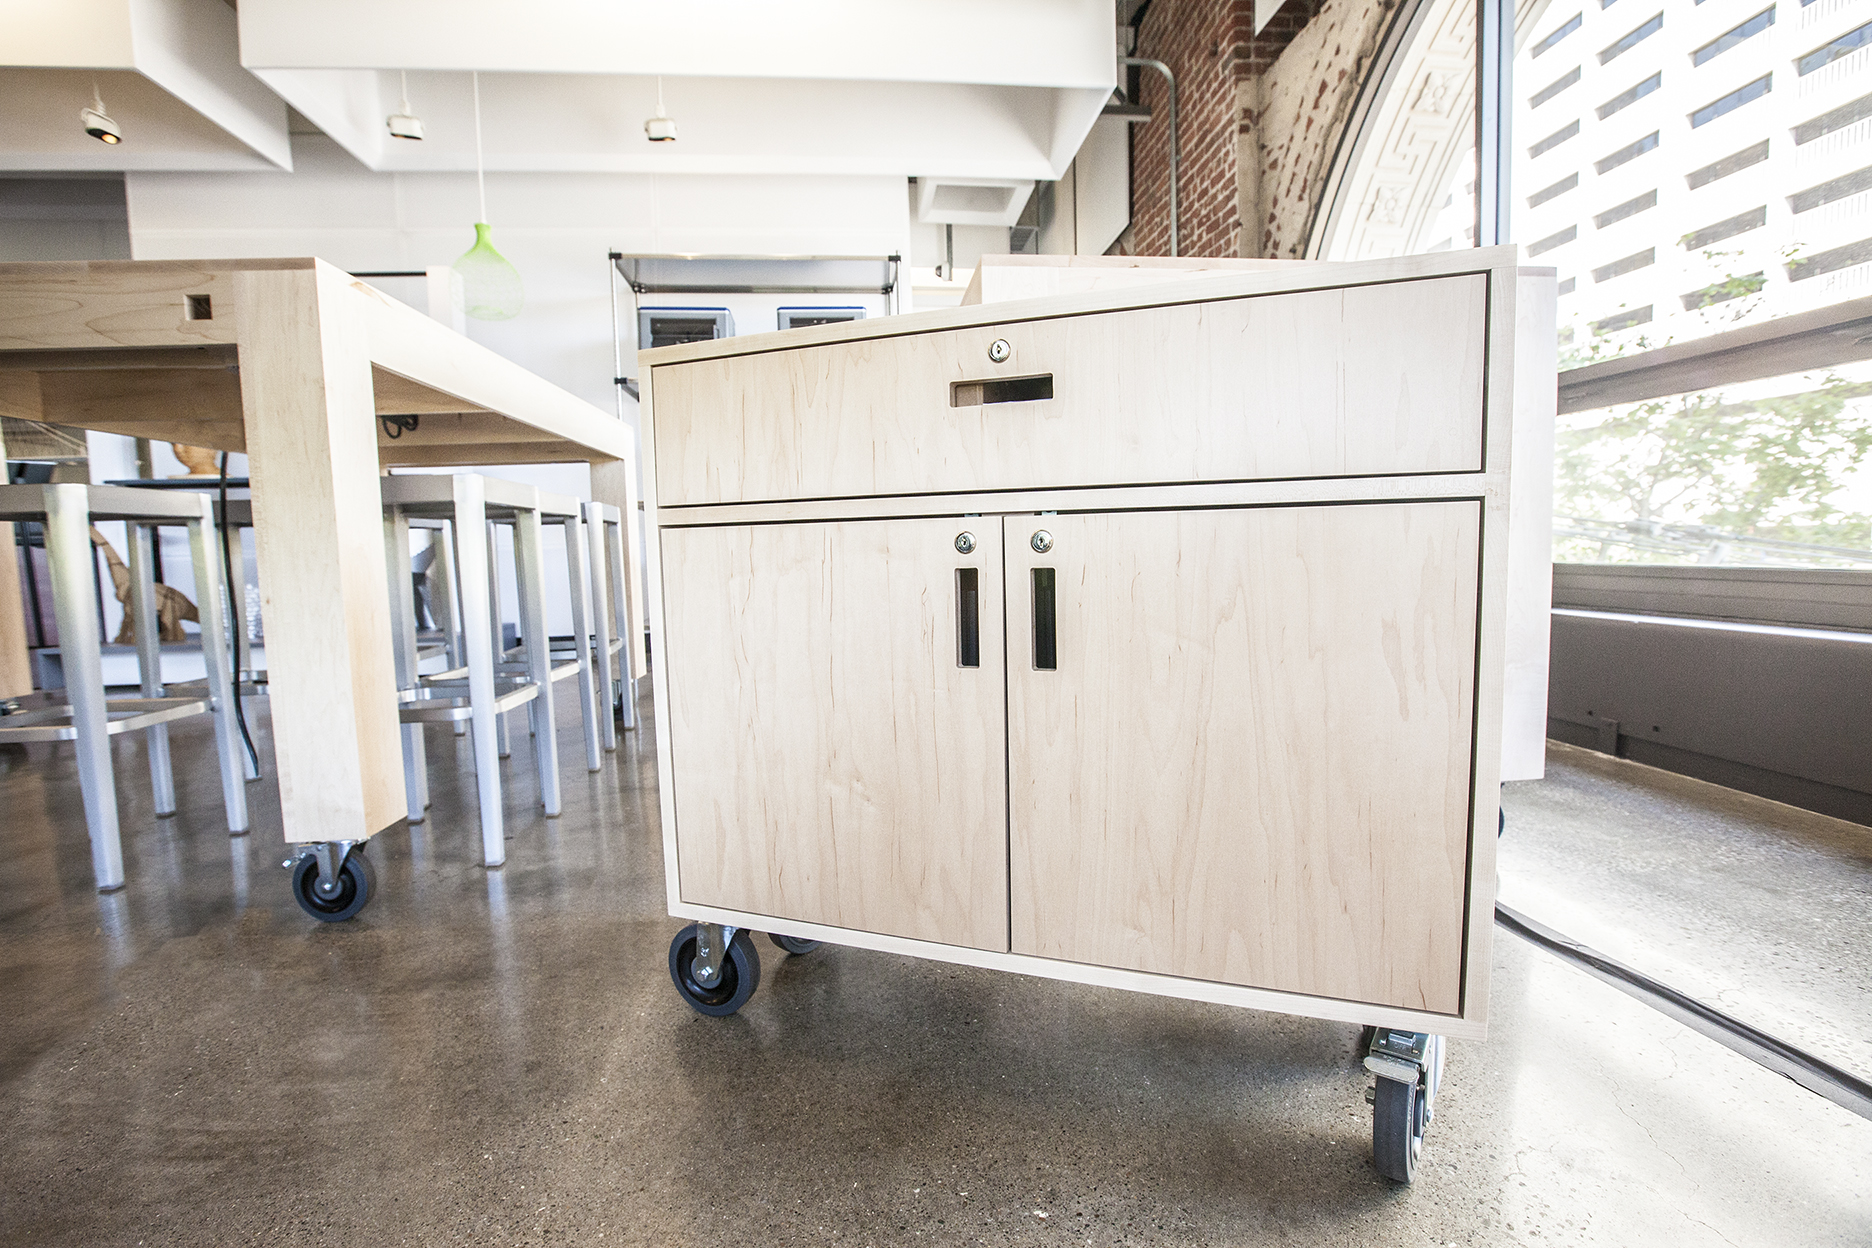 A rolling cabinet designed to hold 14 laptops for the gallery classes.